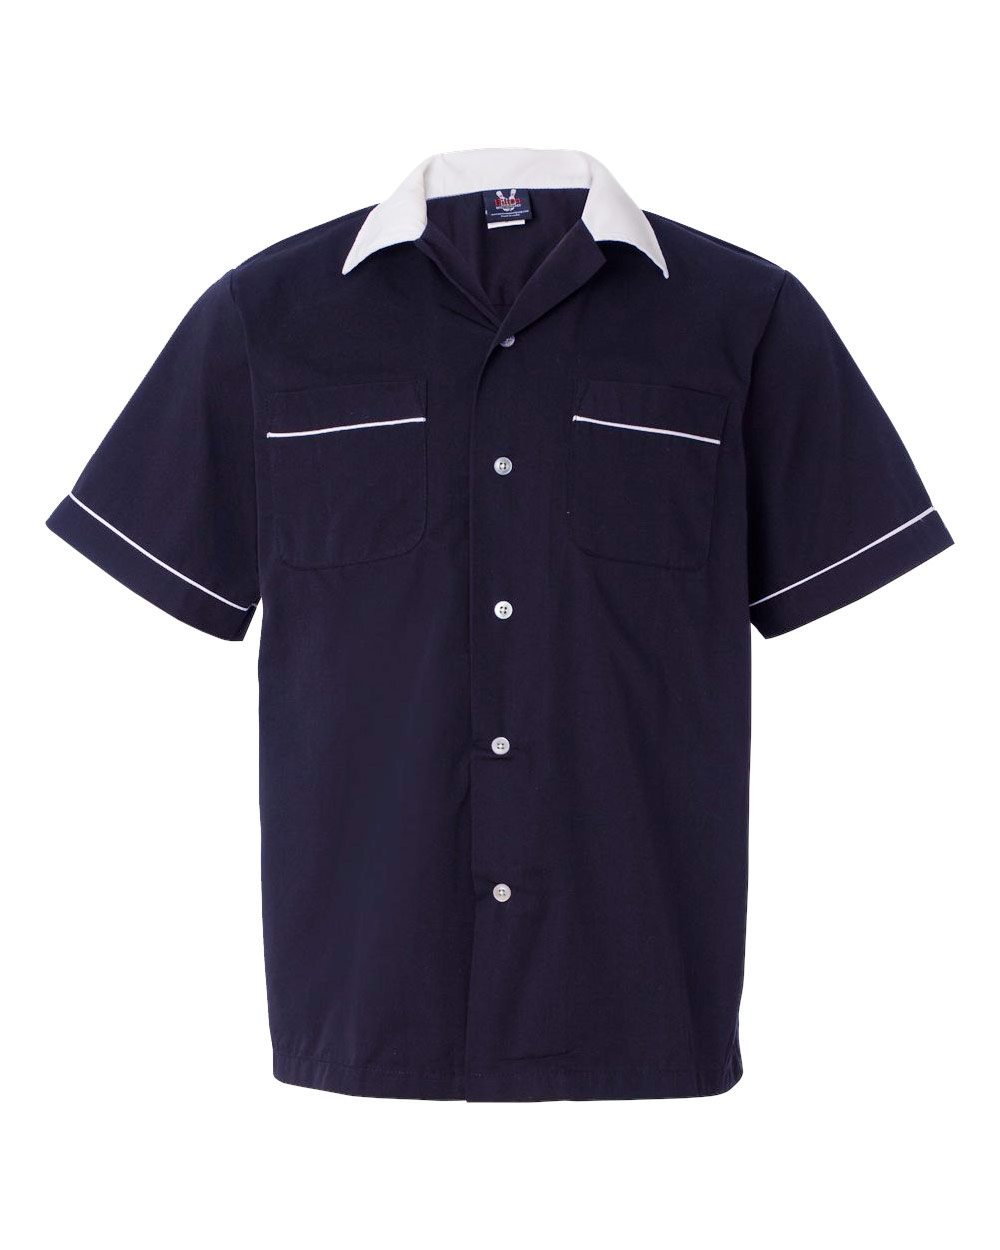 1950s Style Mens Shirts Classic Bowler 2.0 Bowling Shirt - Navy  White $39.95 AT vintagedancer.com